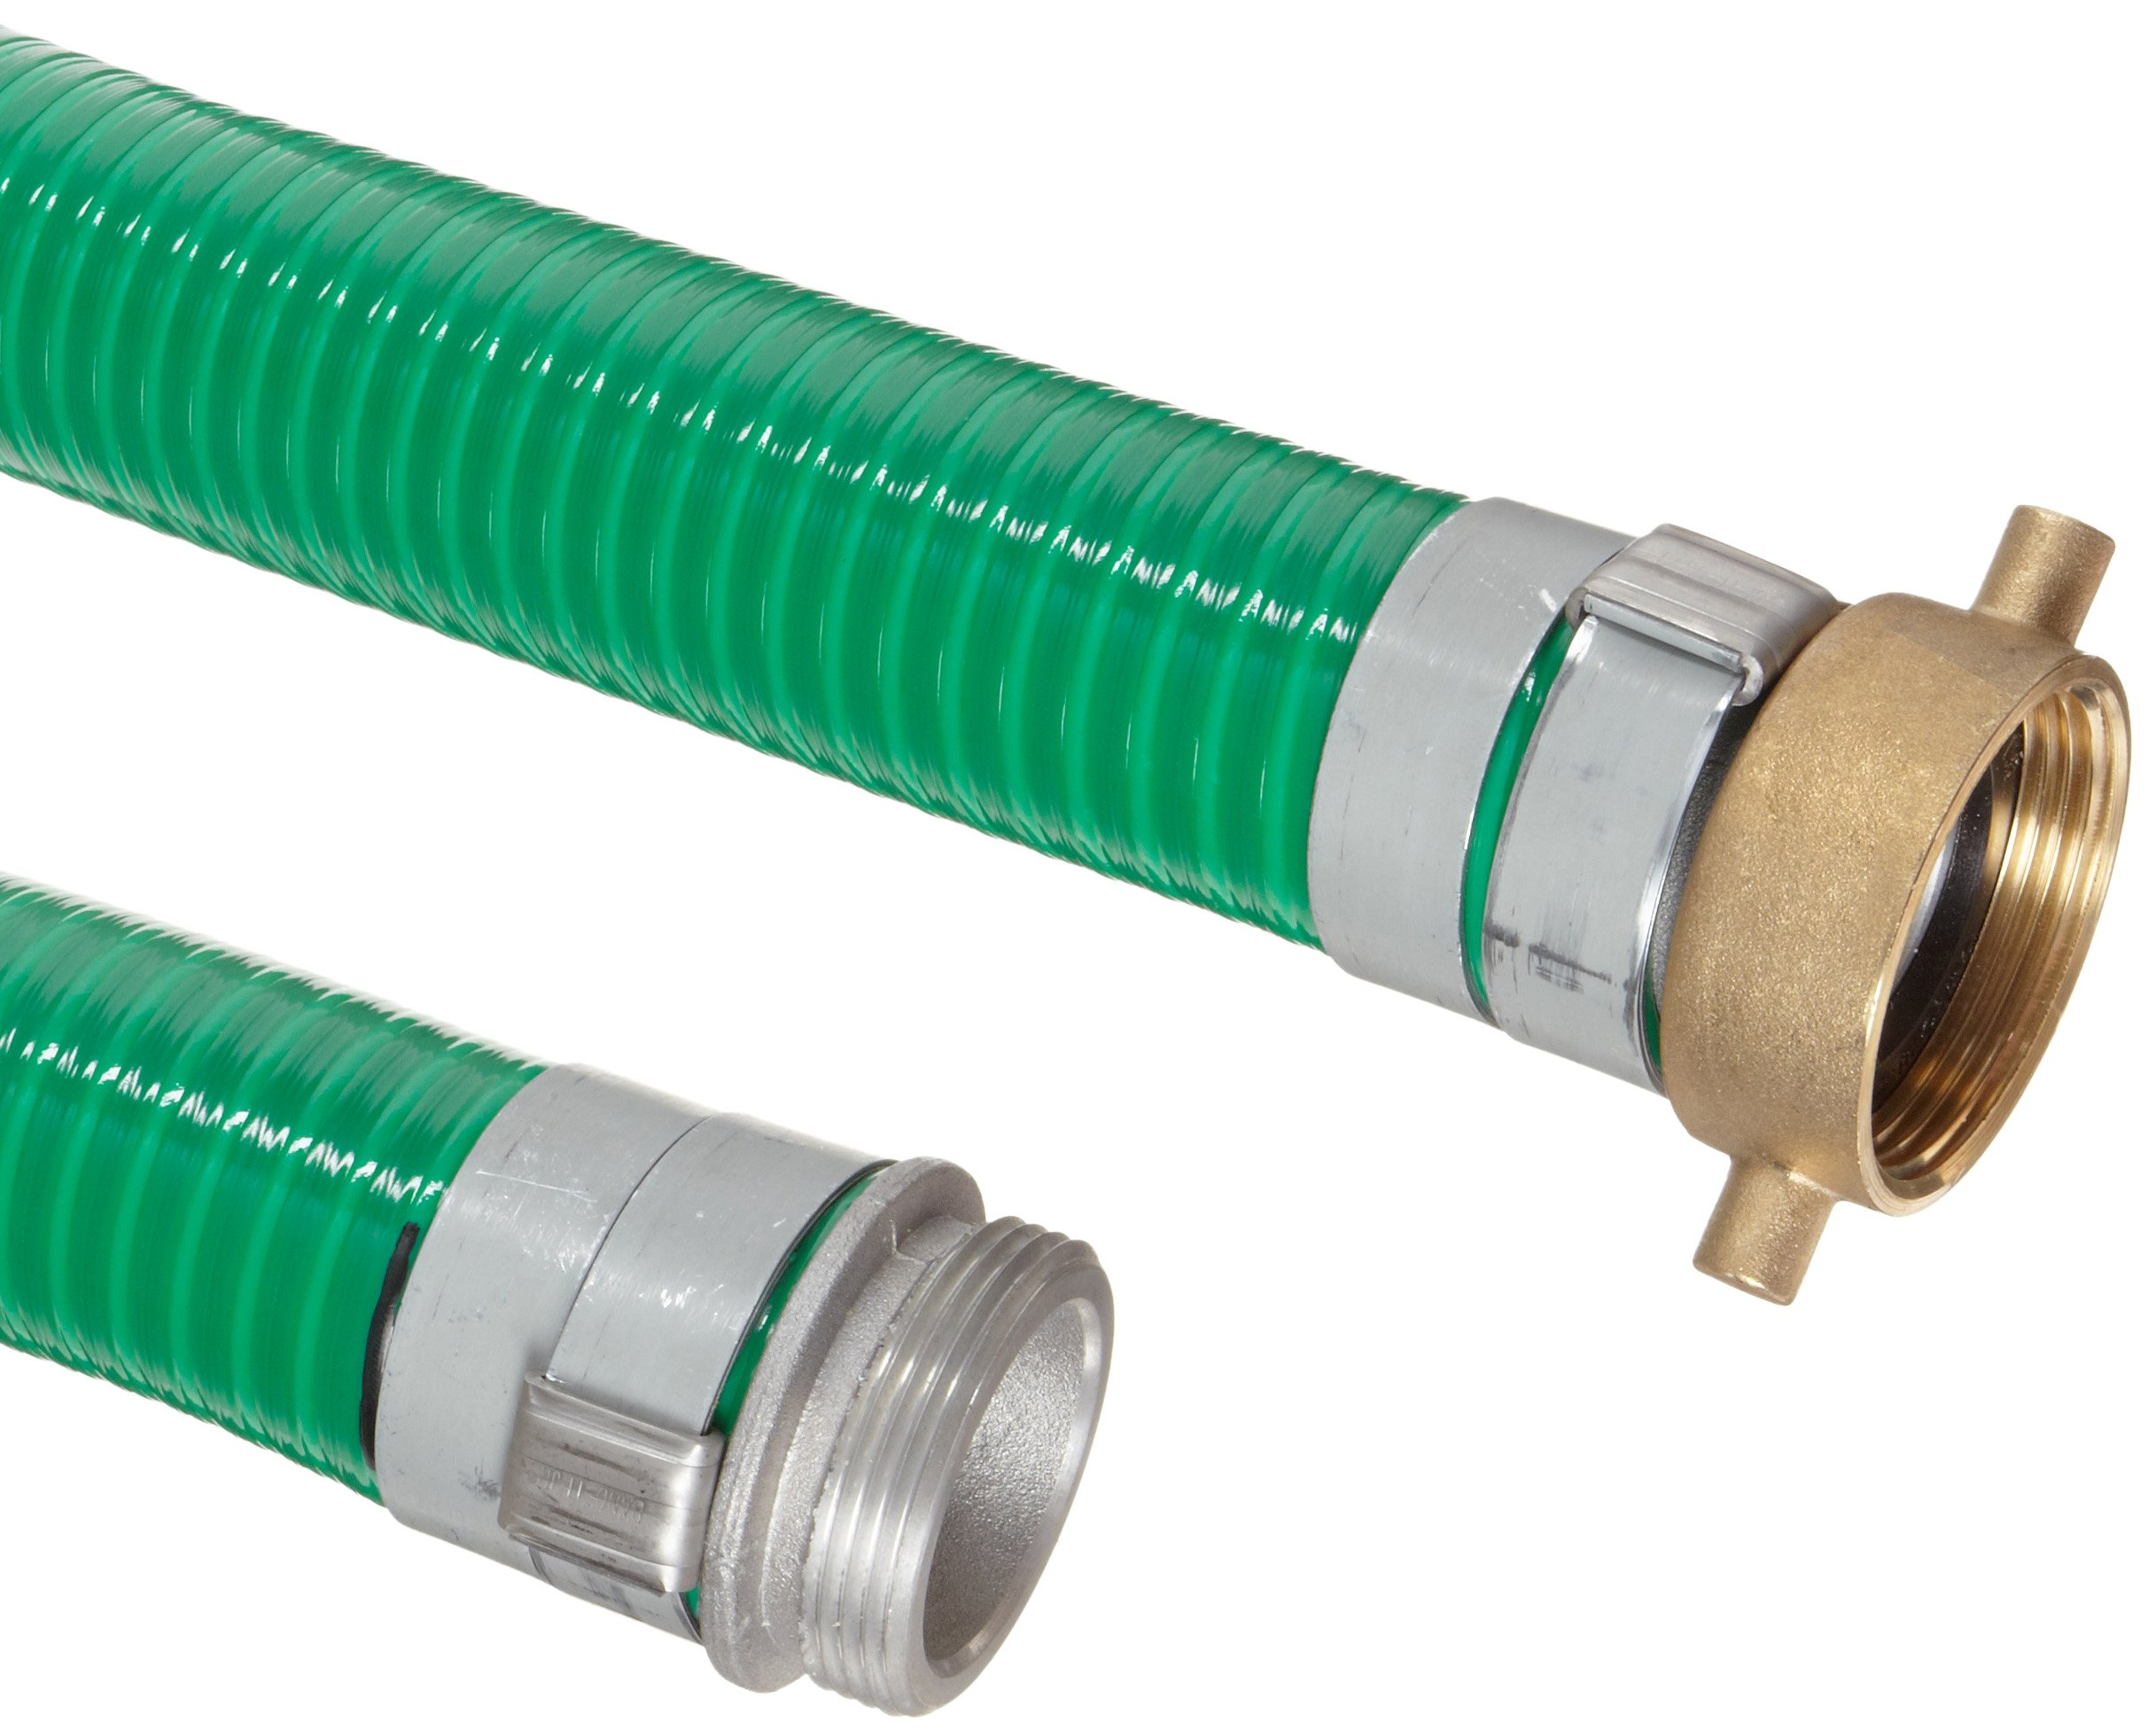 Goodyear EP Spiraflex Aggie Green PVC Suction/Discharge Hose Assembly, 4'' Aluminum Male x Brass Female Swivel Connection, 29mmHg Vacuum Rating 55 PSI Maximum Pressure, 20' Length, 4'' ID